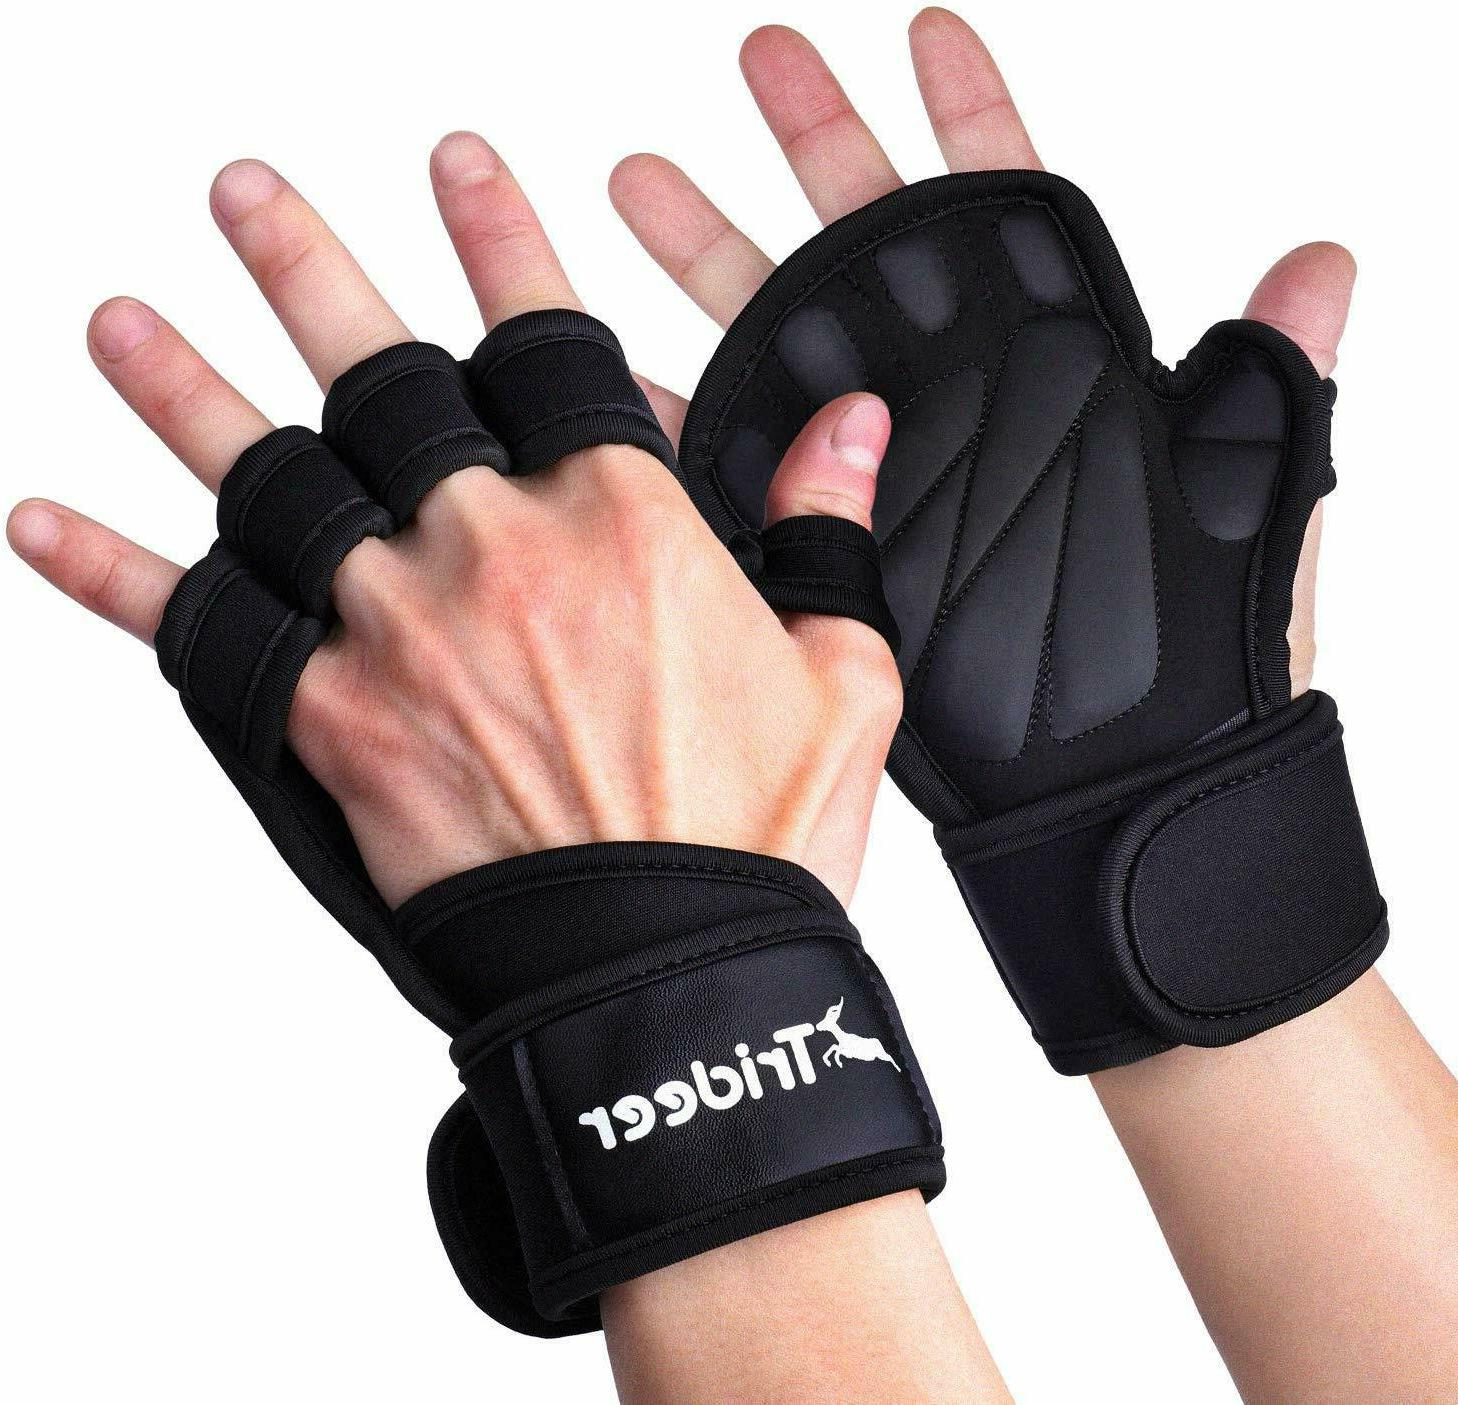 ventilated weight lifting gloves gym gloves workout